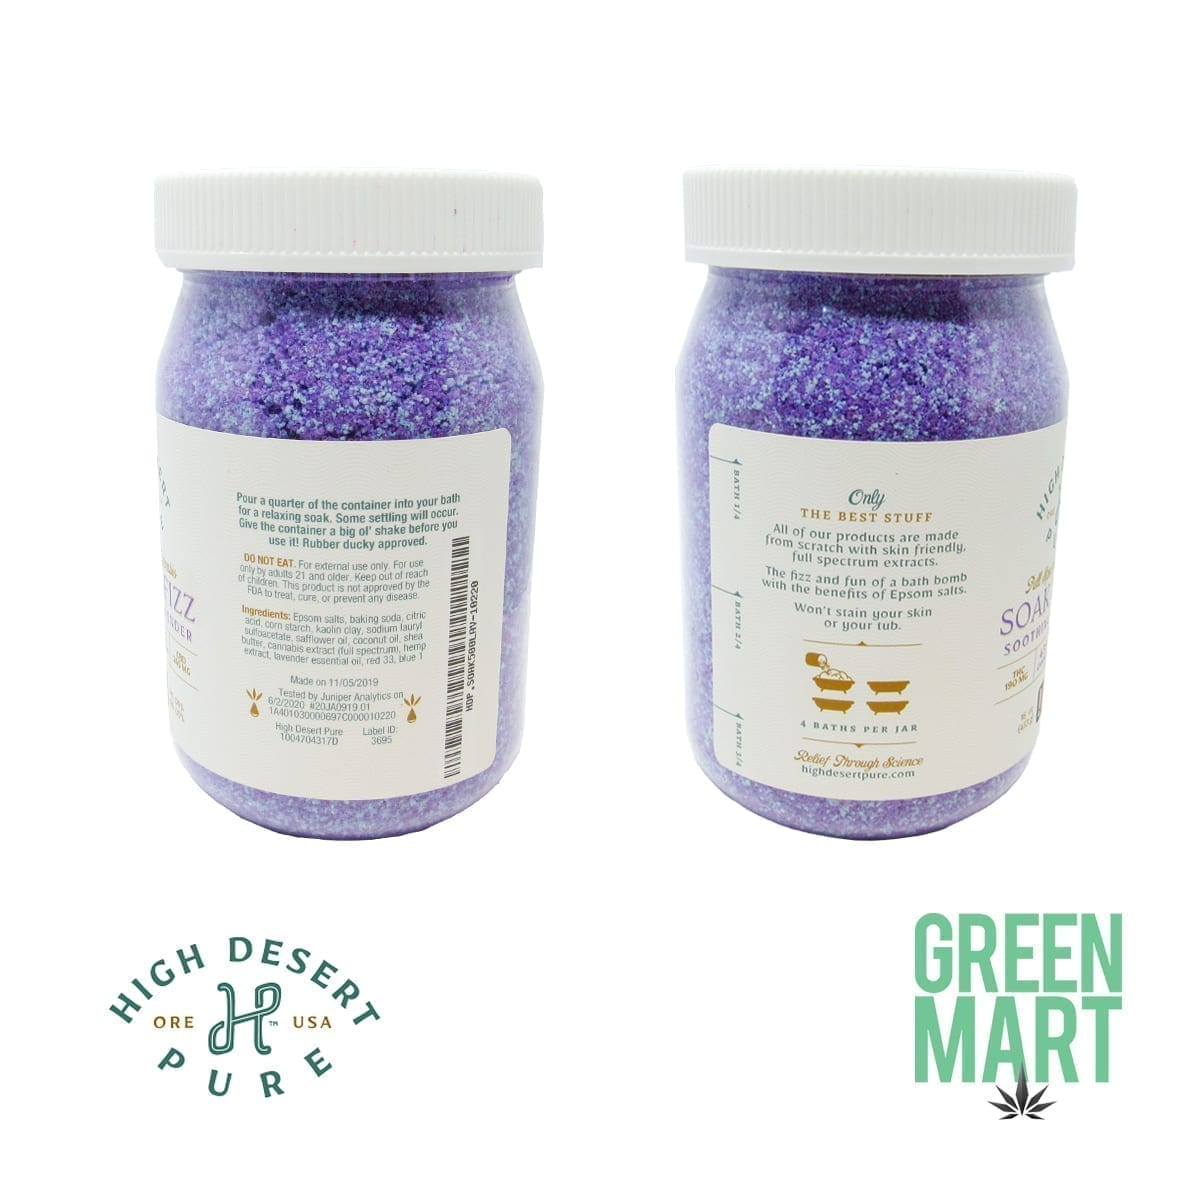 High Desert Pure Soak And Fizz Back